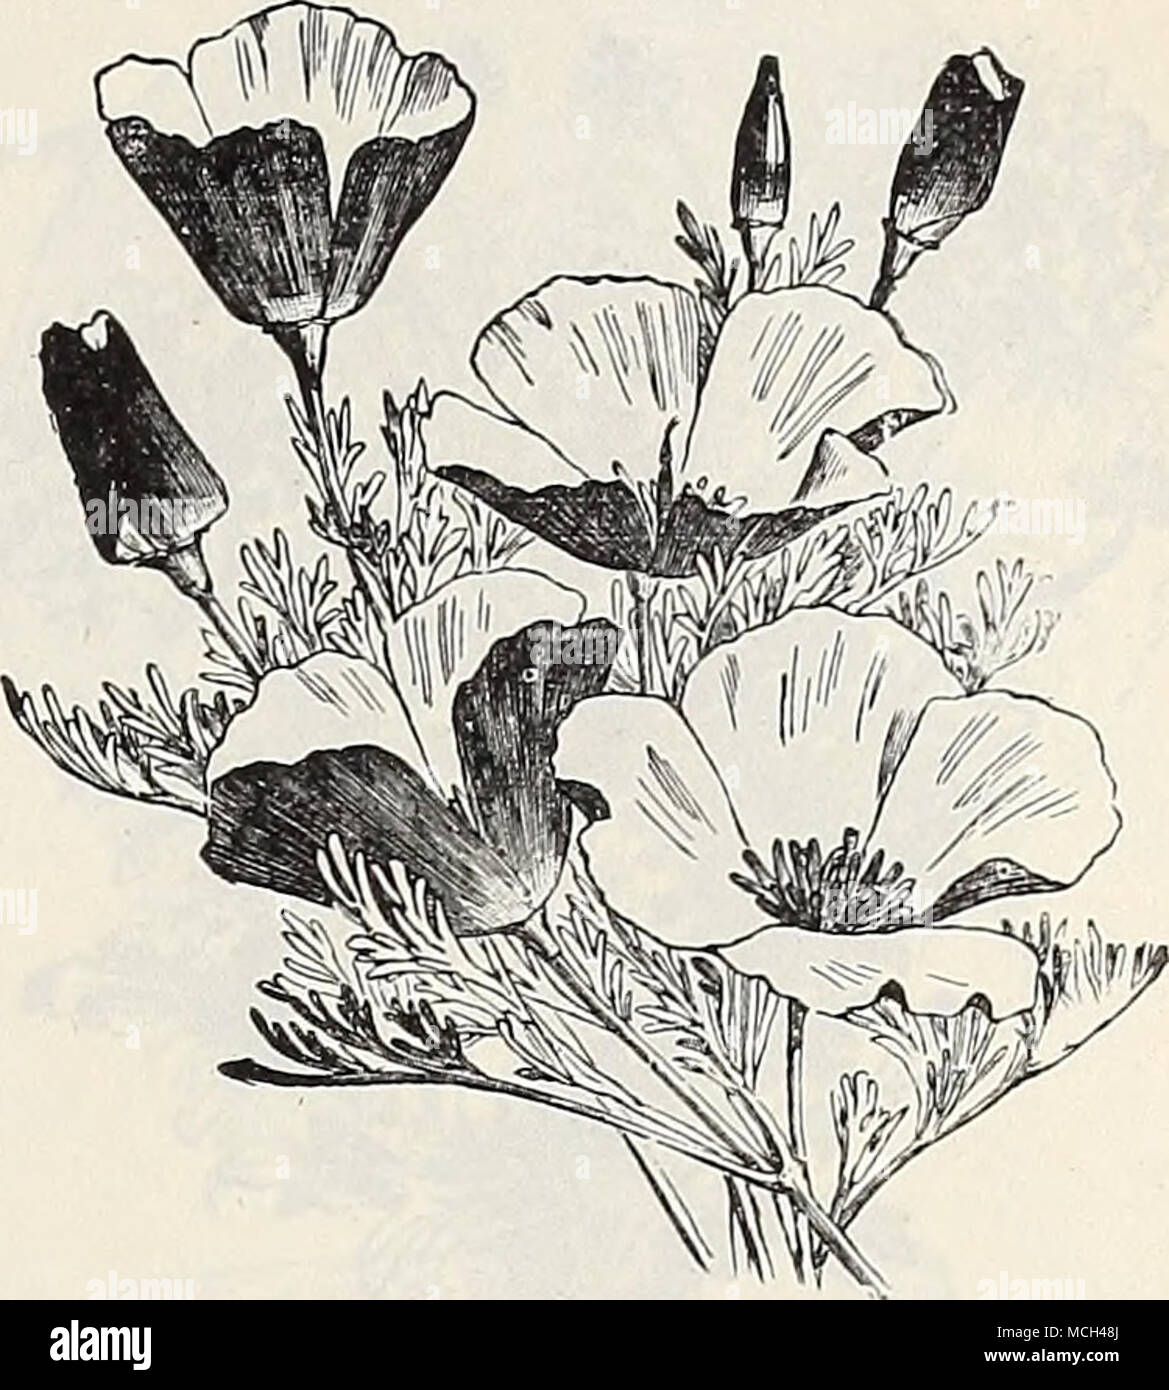 """. Very masses; Euphorbia Vakiegata. EcHiNocYSTis Lobata. ESCHSCHOLTZIA. ESCHSCHOLTZIA. (California Poppy, Gold Cups.) attractive annuals for beds, edgings, or profuse floweiing, fine-cut, glaucous foli- age; in bloom from June till frost; 1 foot. (See cut.) PER PKT. 24""""23 Californica. linoht yellow. Oz., 25 cis. 5 2424 — Alba. I'ure uhite Oz., 25 cts 5 2425 — Aurantiaca. Rich orange. Oz., 30 cts. 5 2426 riandarin. Inner side of the petals rich orange, the outer side brilliant scarlet. Per oz., 40 CIS 5, 2427 Rose Cardinal. Large flowers of intense carmine. O?,.. 40 cts 5' 2428 Qoiden West - Stock Image"""